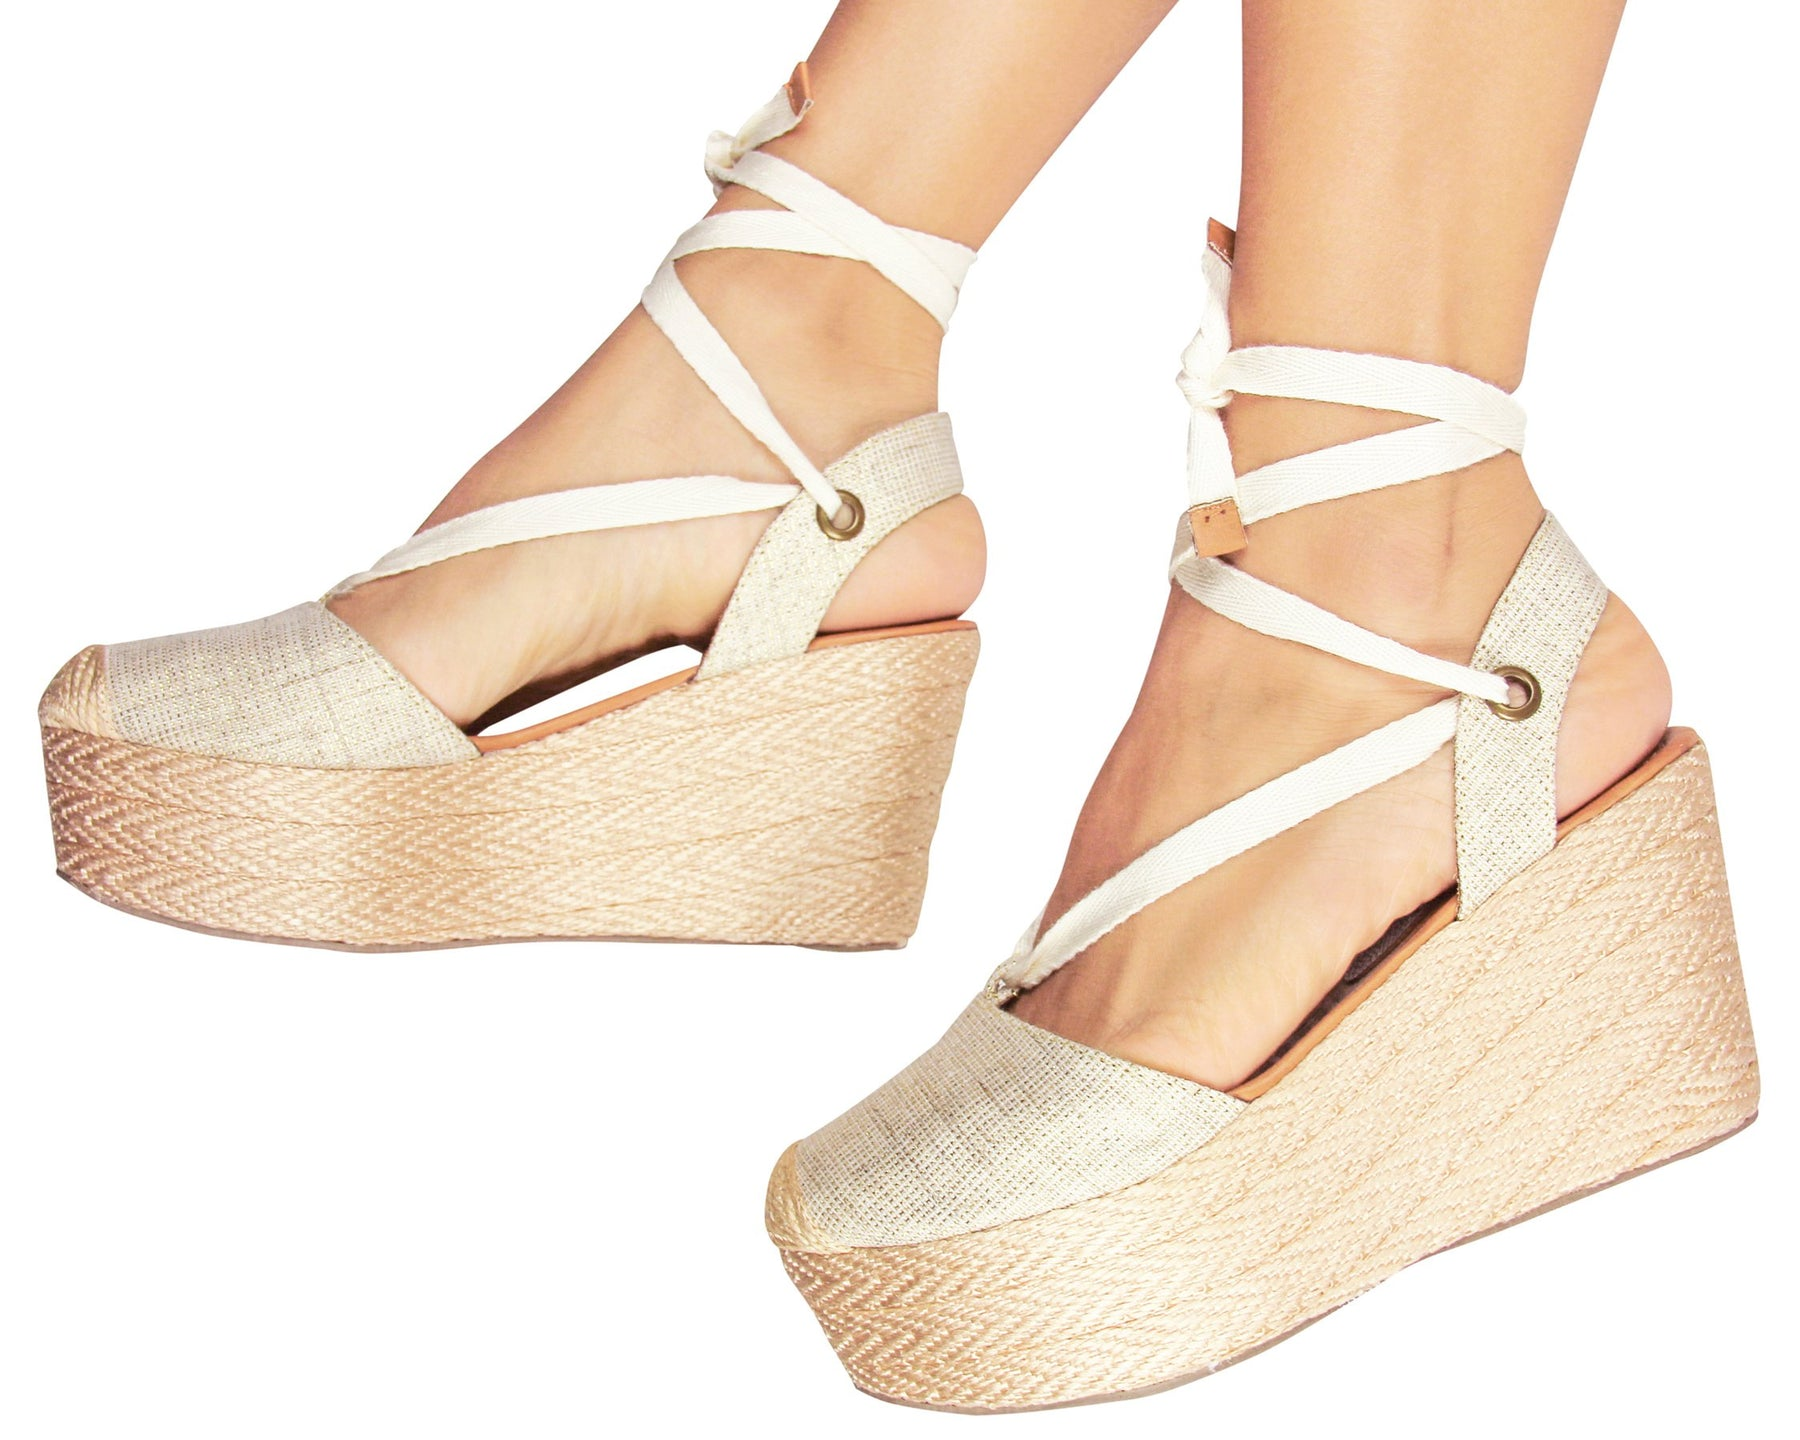 Silvia Cobos Lace Up Beige - Pal Negocio